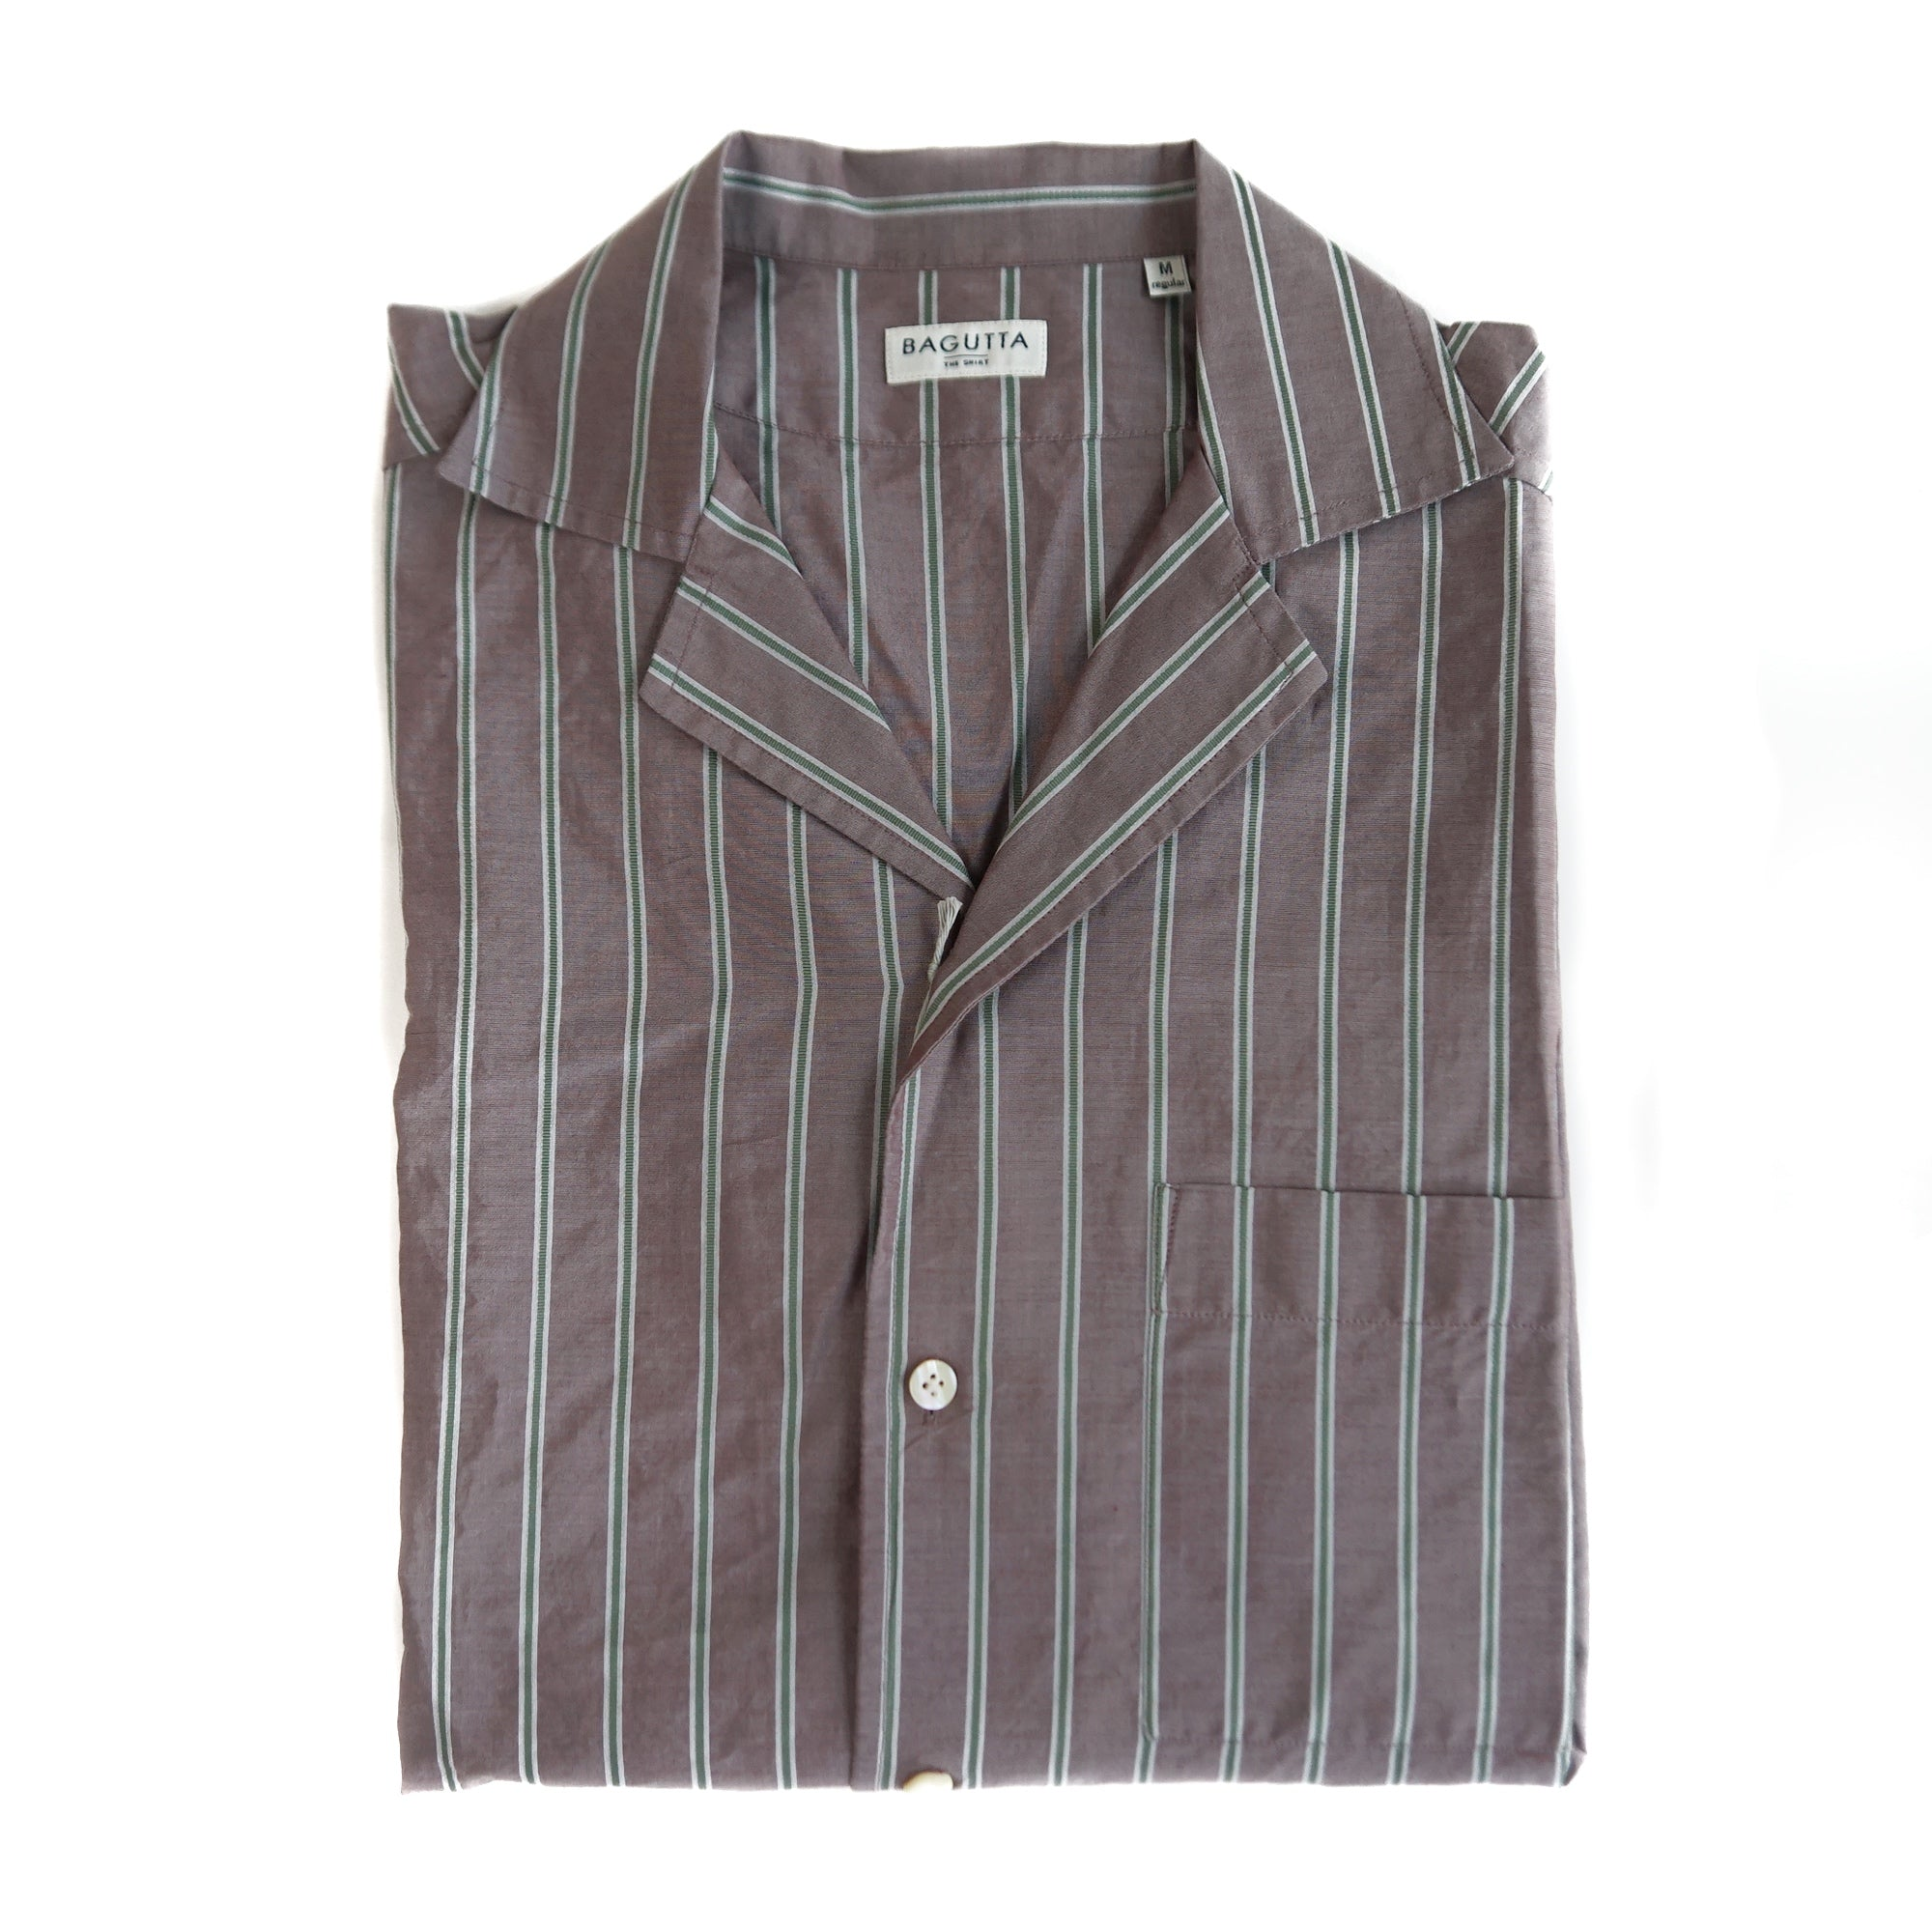 Bagutta / Open Collar Shirt (ALOHAK)